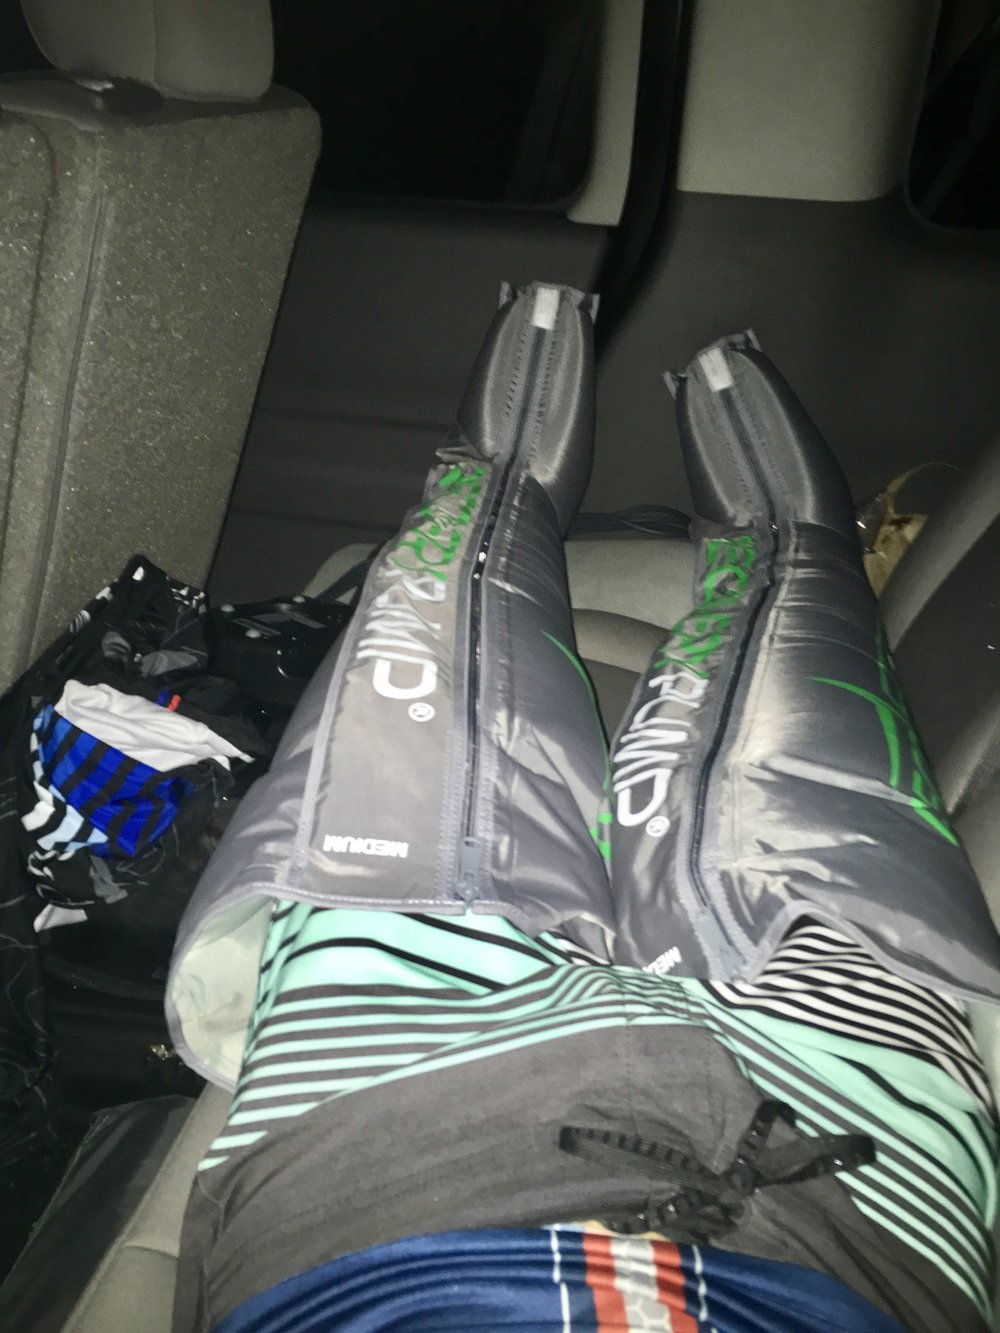 nate kock recovery boots in bus.jpg